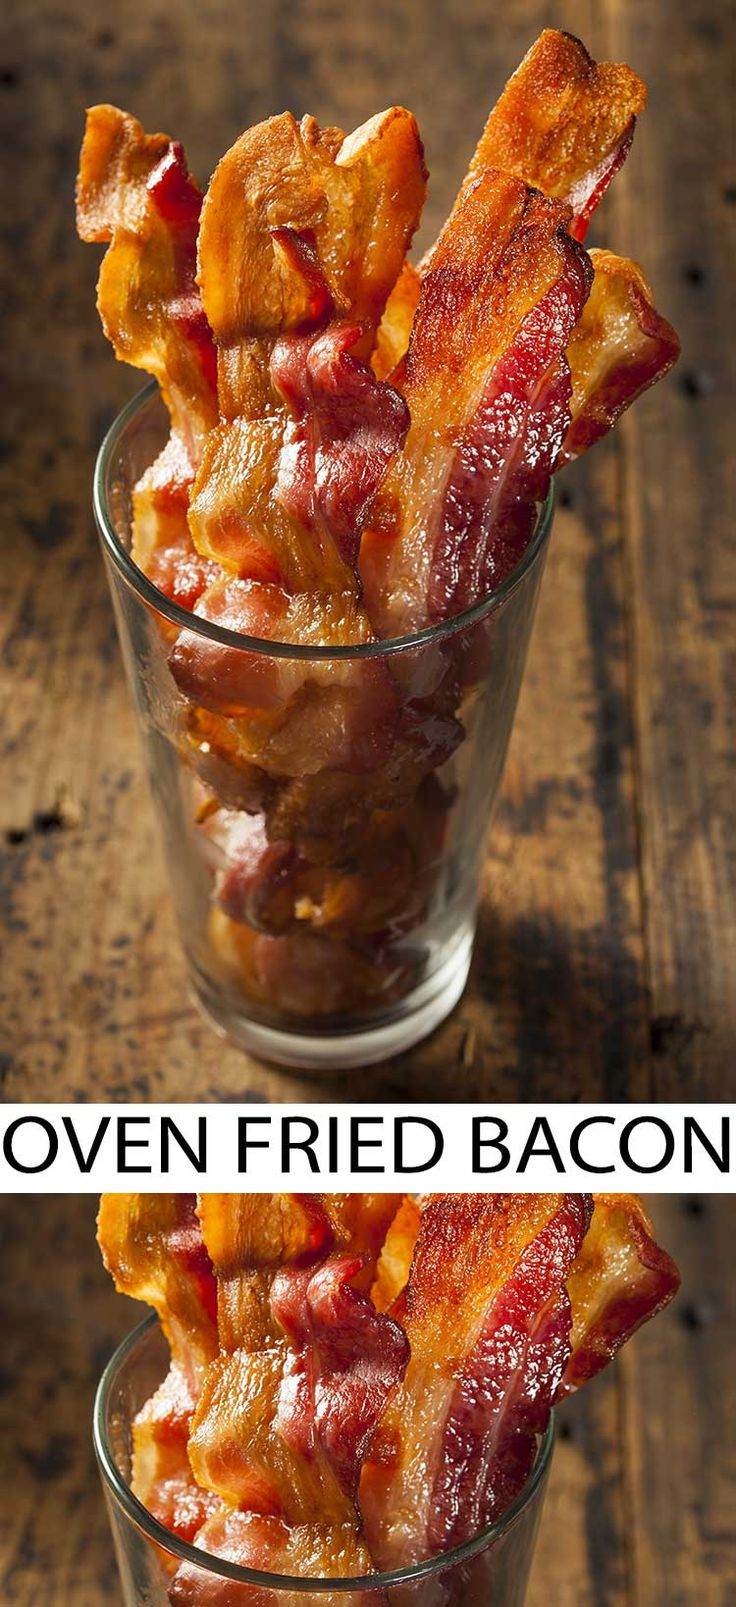 Best Way to Cook Oven Fried Bacon. Cook bacon in the oven for an easier way to make bacon. This is a simple no hassle cooking method that we've used repeatedly to make bacon in the oven.